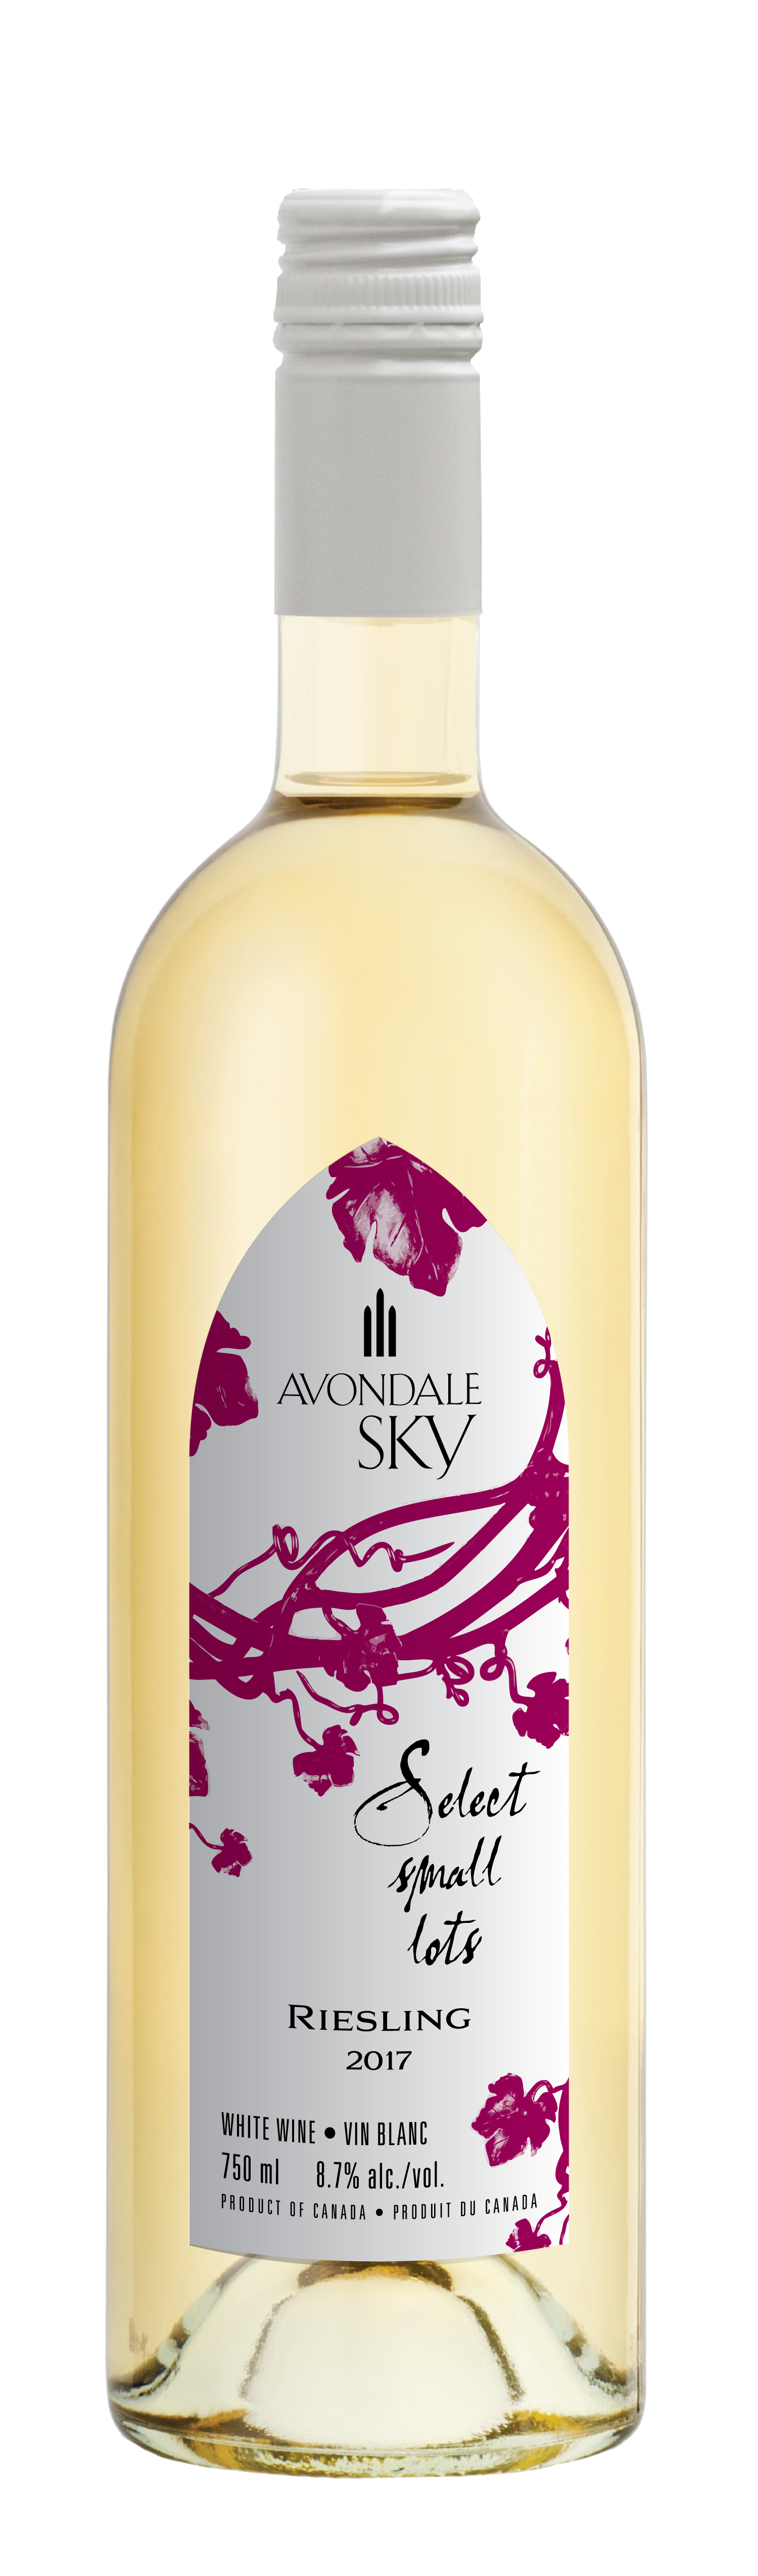 A product image for Avondale Sky Riesling